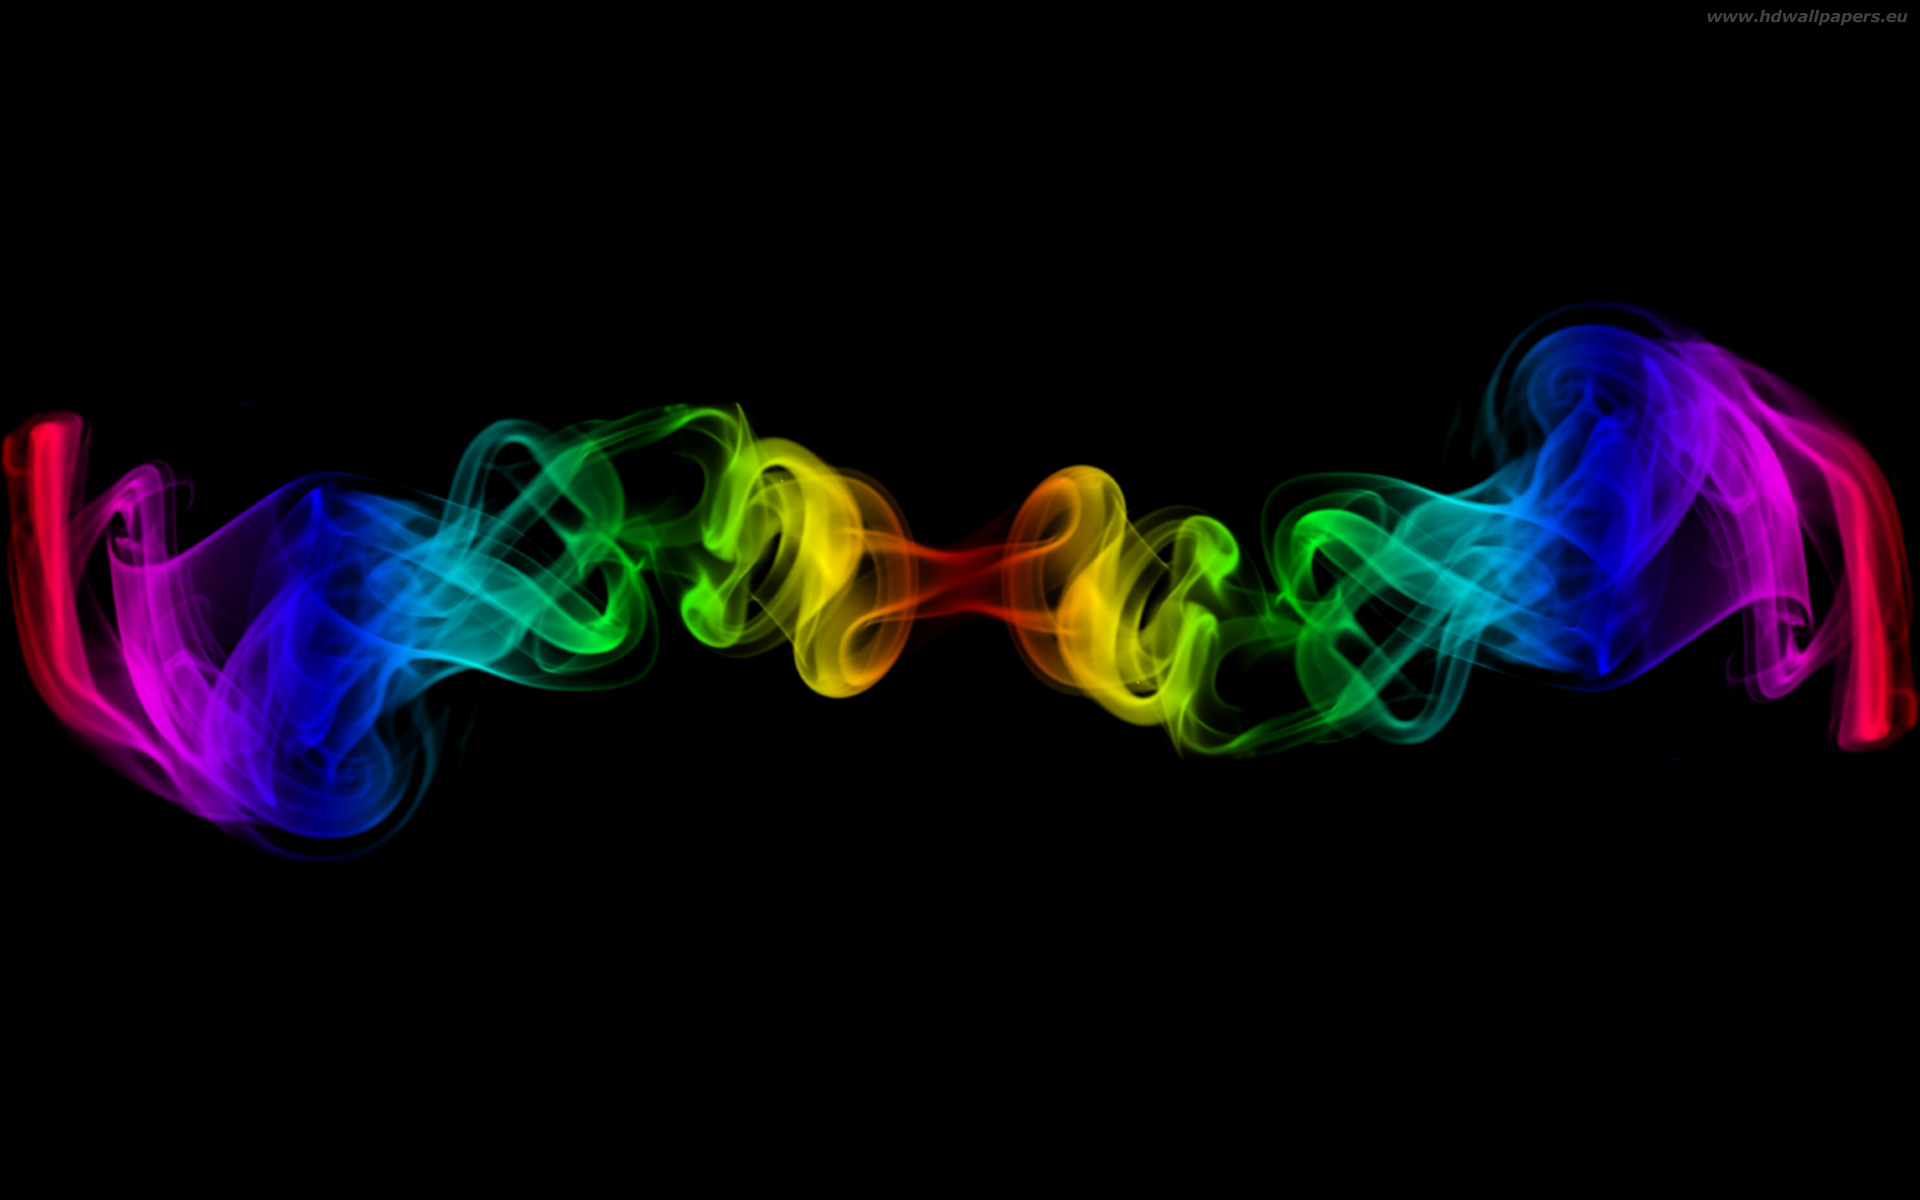 Rainbow Smoke wallpaper - 943108